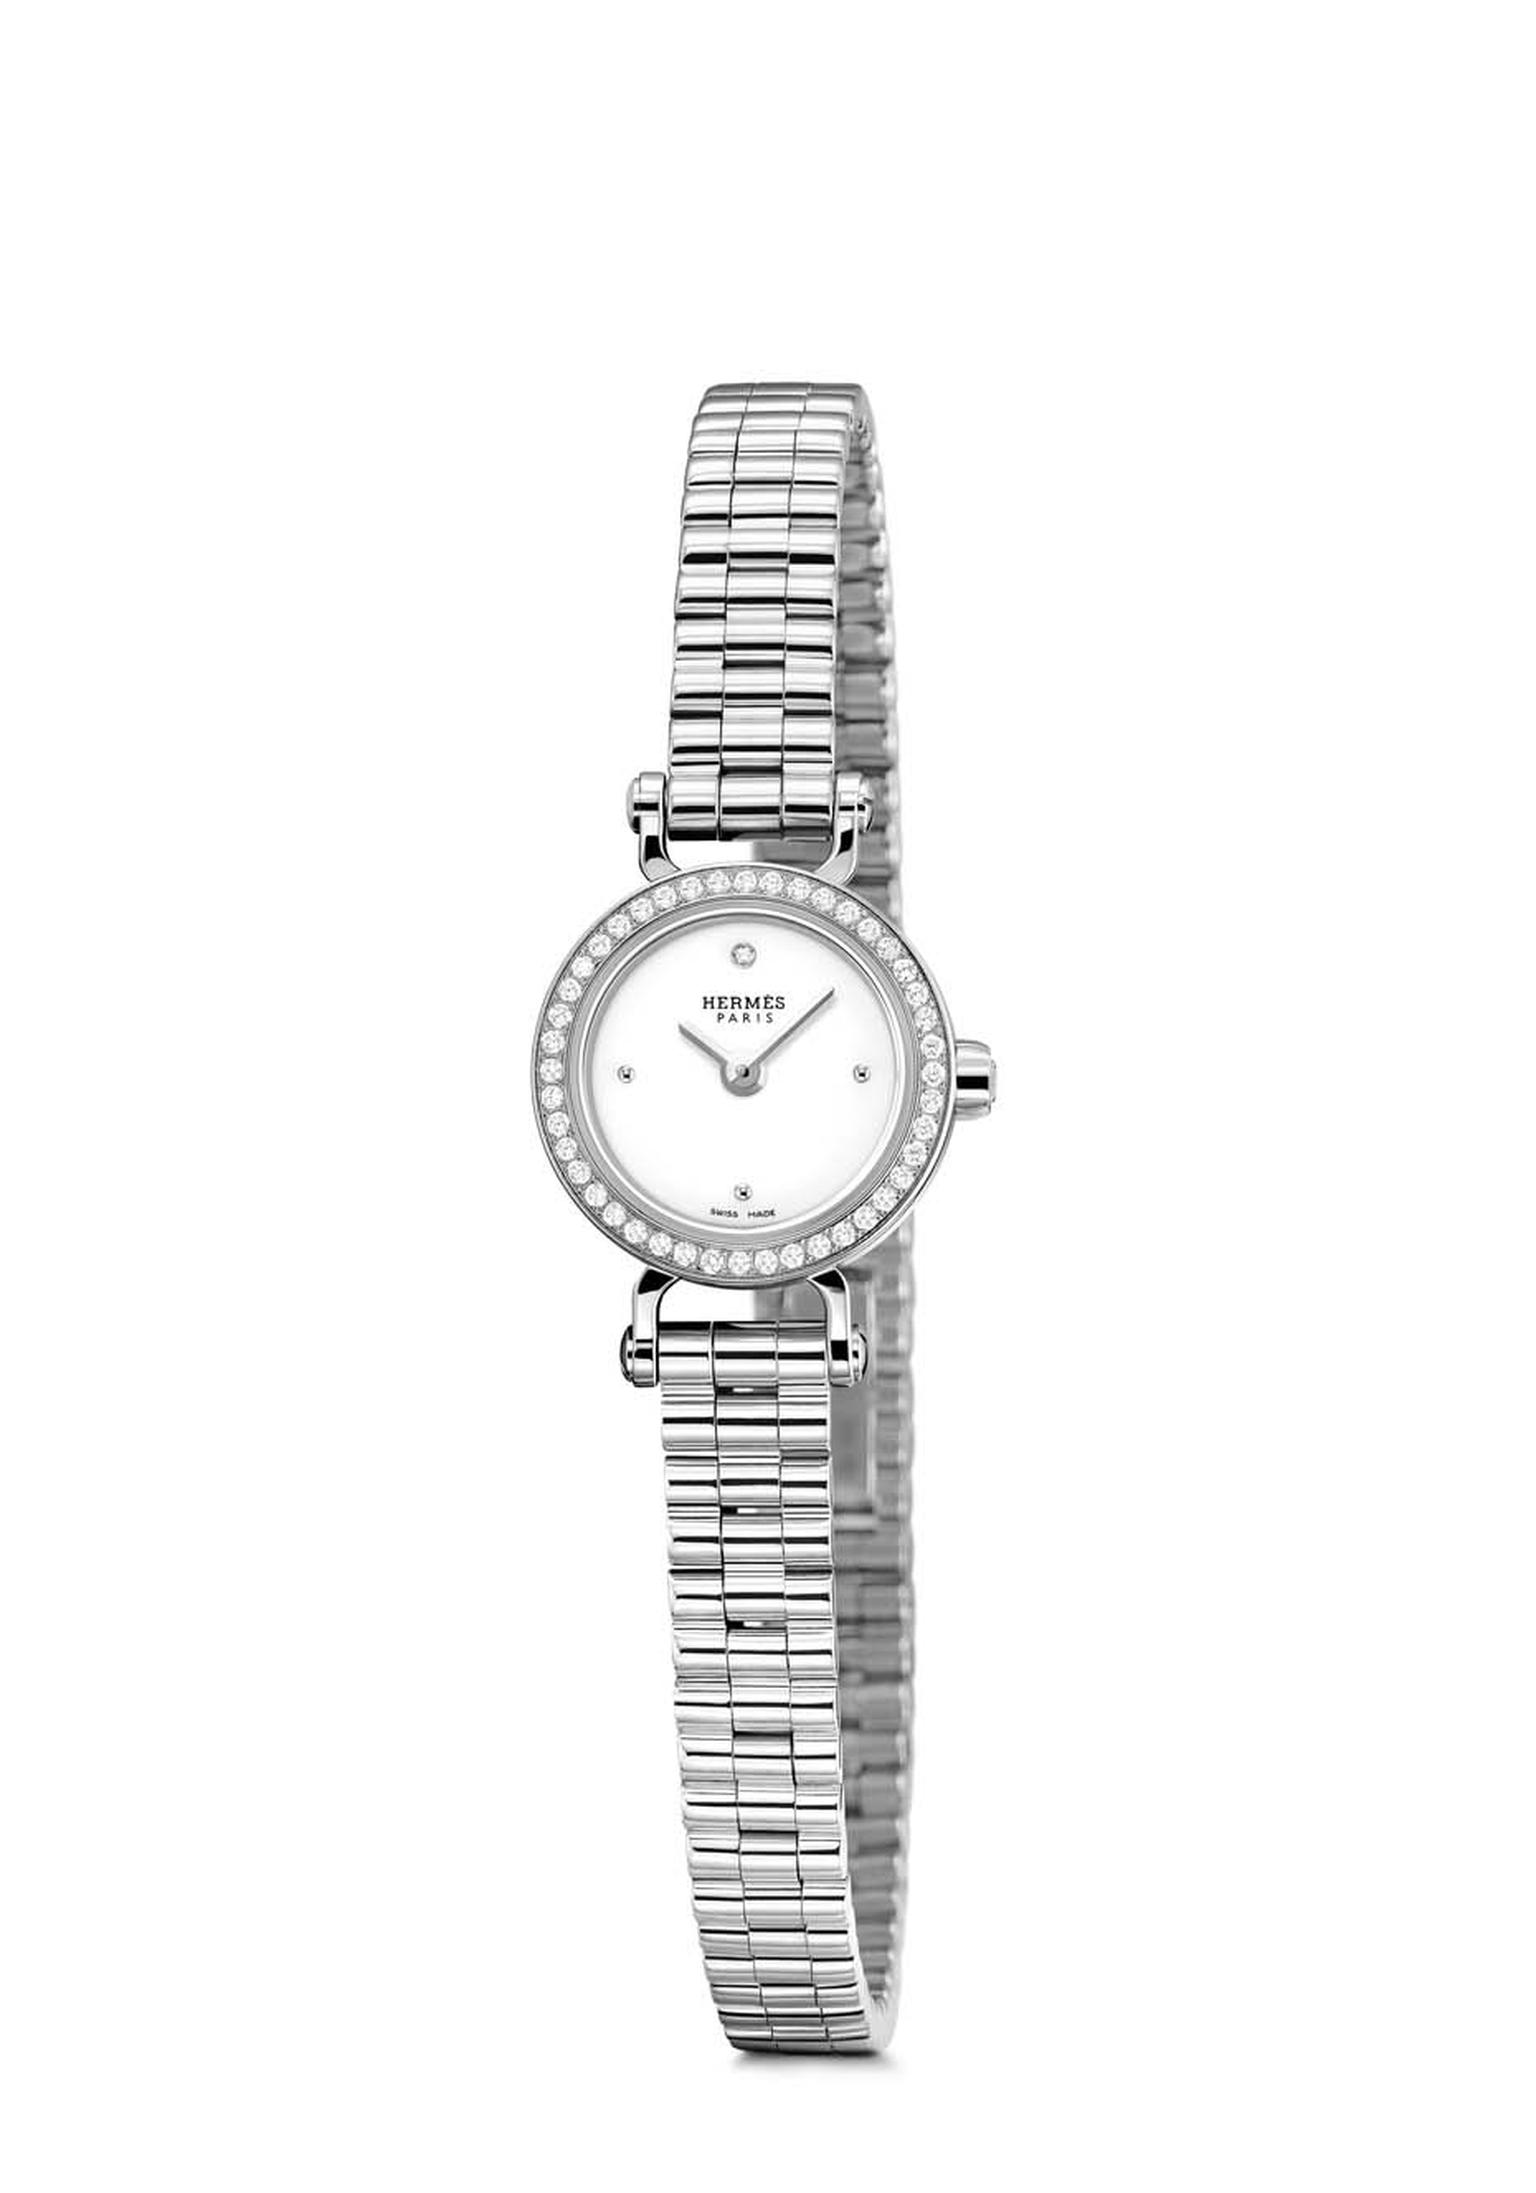 Hermès Faubourg watch with a diamond-set white gold case and white gold bracelet